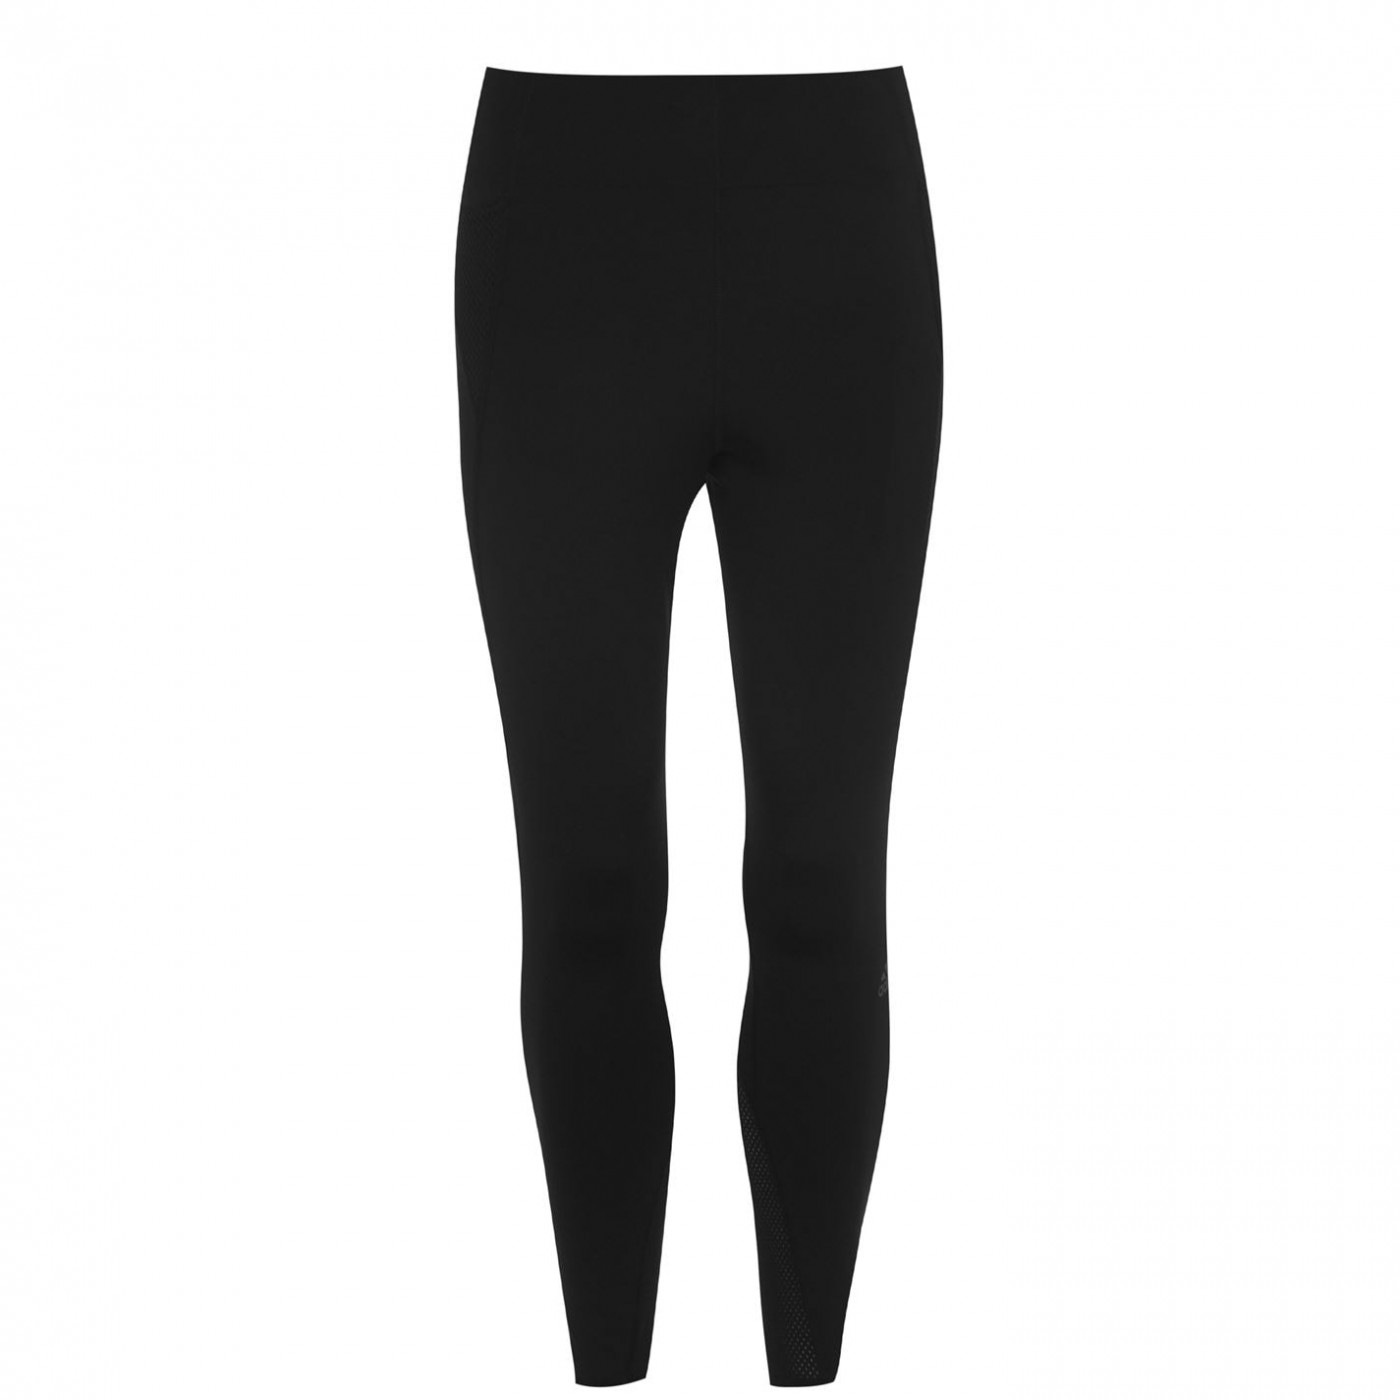 Adidas High Waisted Tights Ladies